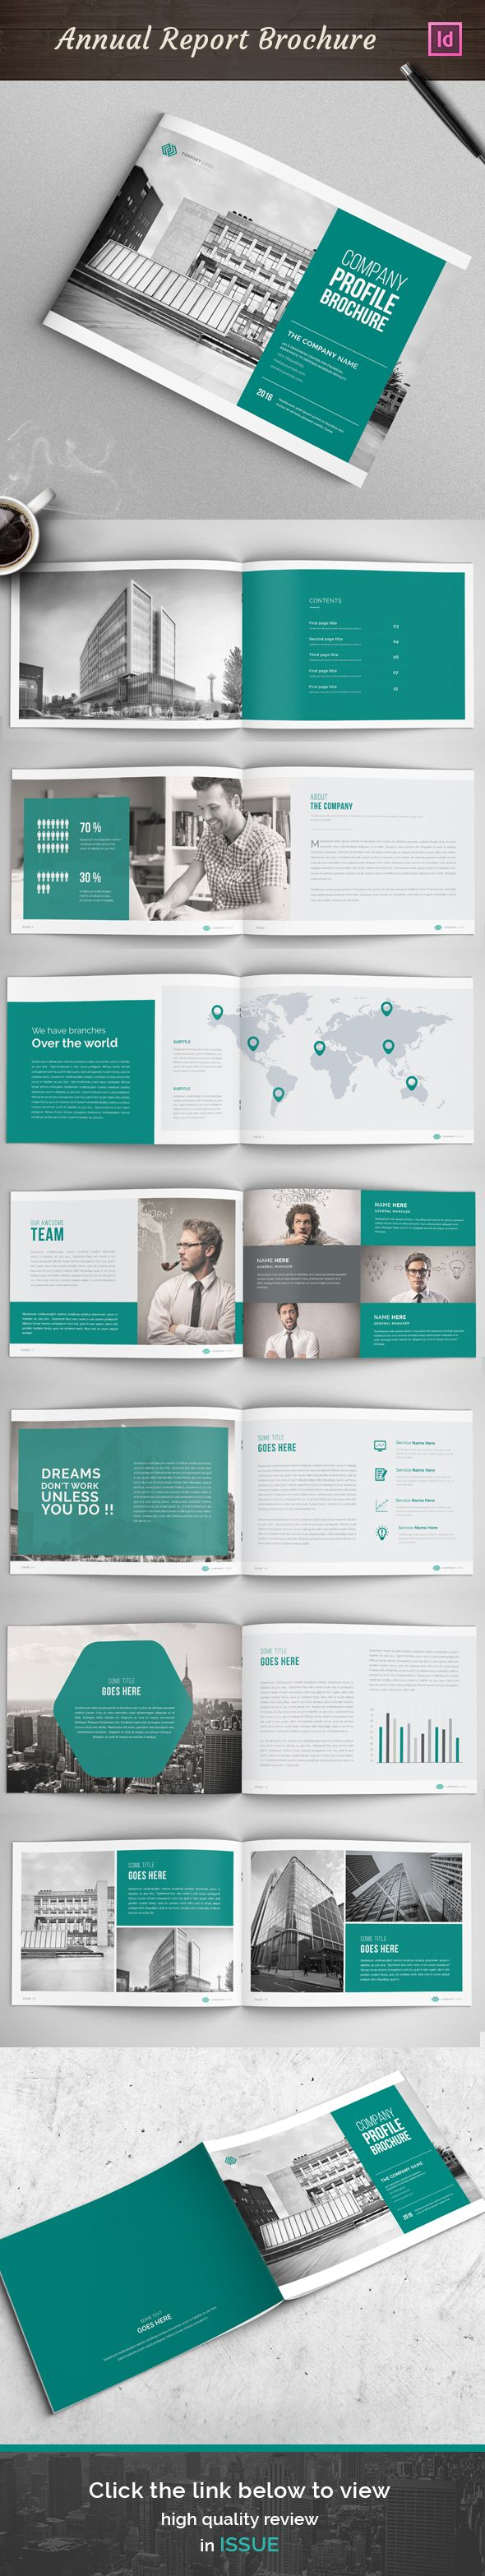 "Check out this @Behance project: ""Annual Report Brochure 02"" https://www.behance.net/gallery/35420419/Annual-Report-Brochure-02"